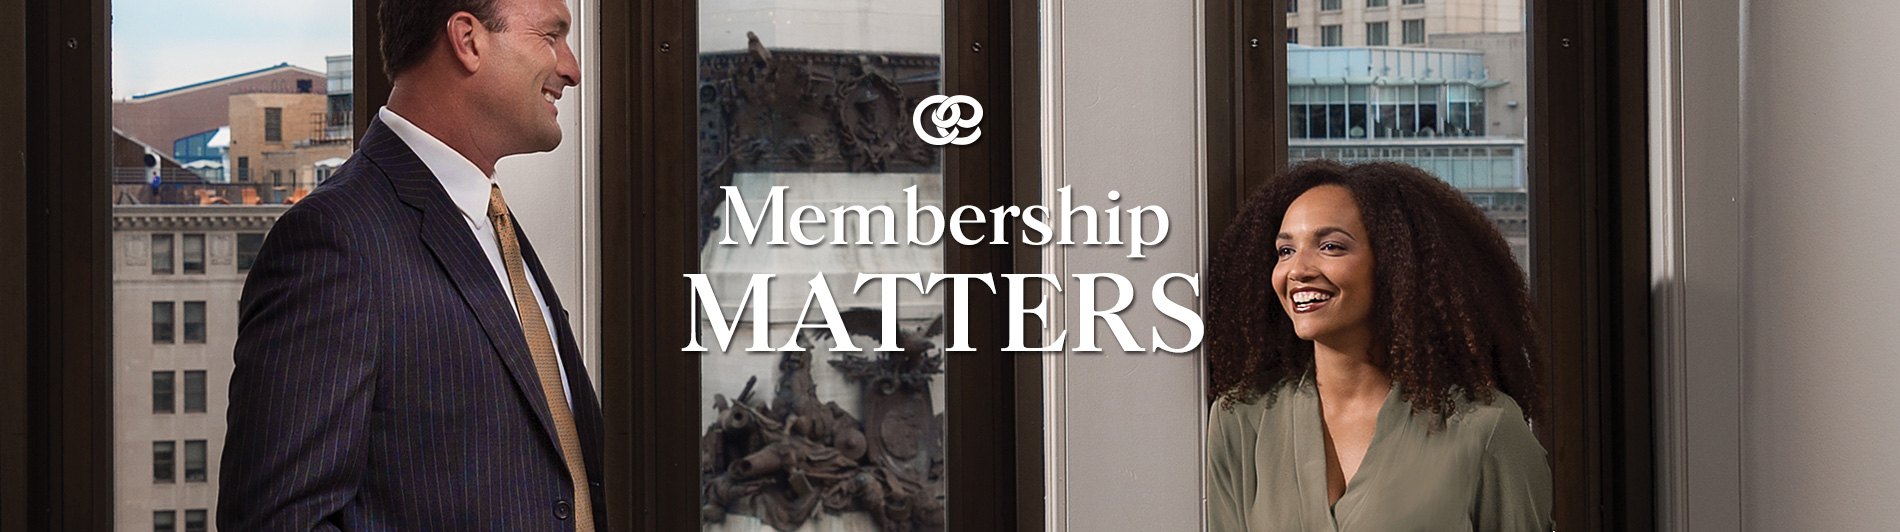 Types of Membership - The Columbia Club